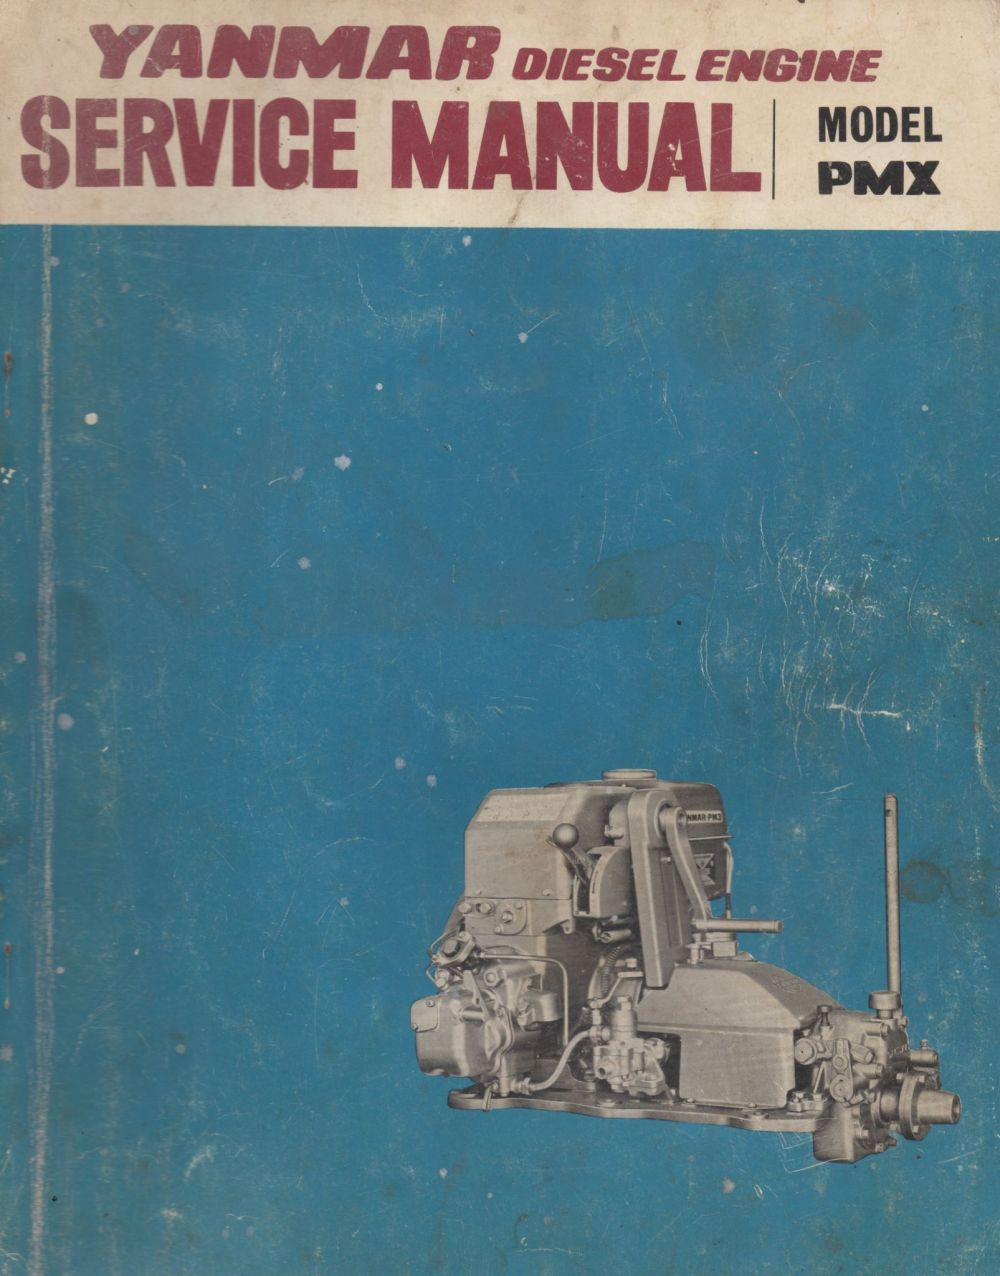 medium resolution of yanmar diesel engine service manual pmx variant attributes variant attributes variant attributes variant attributes stock status out of stock